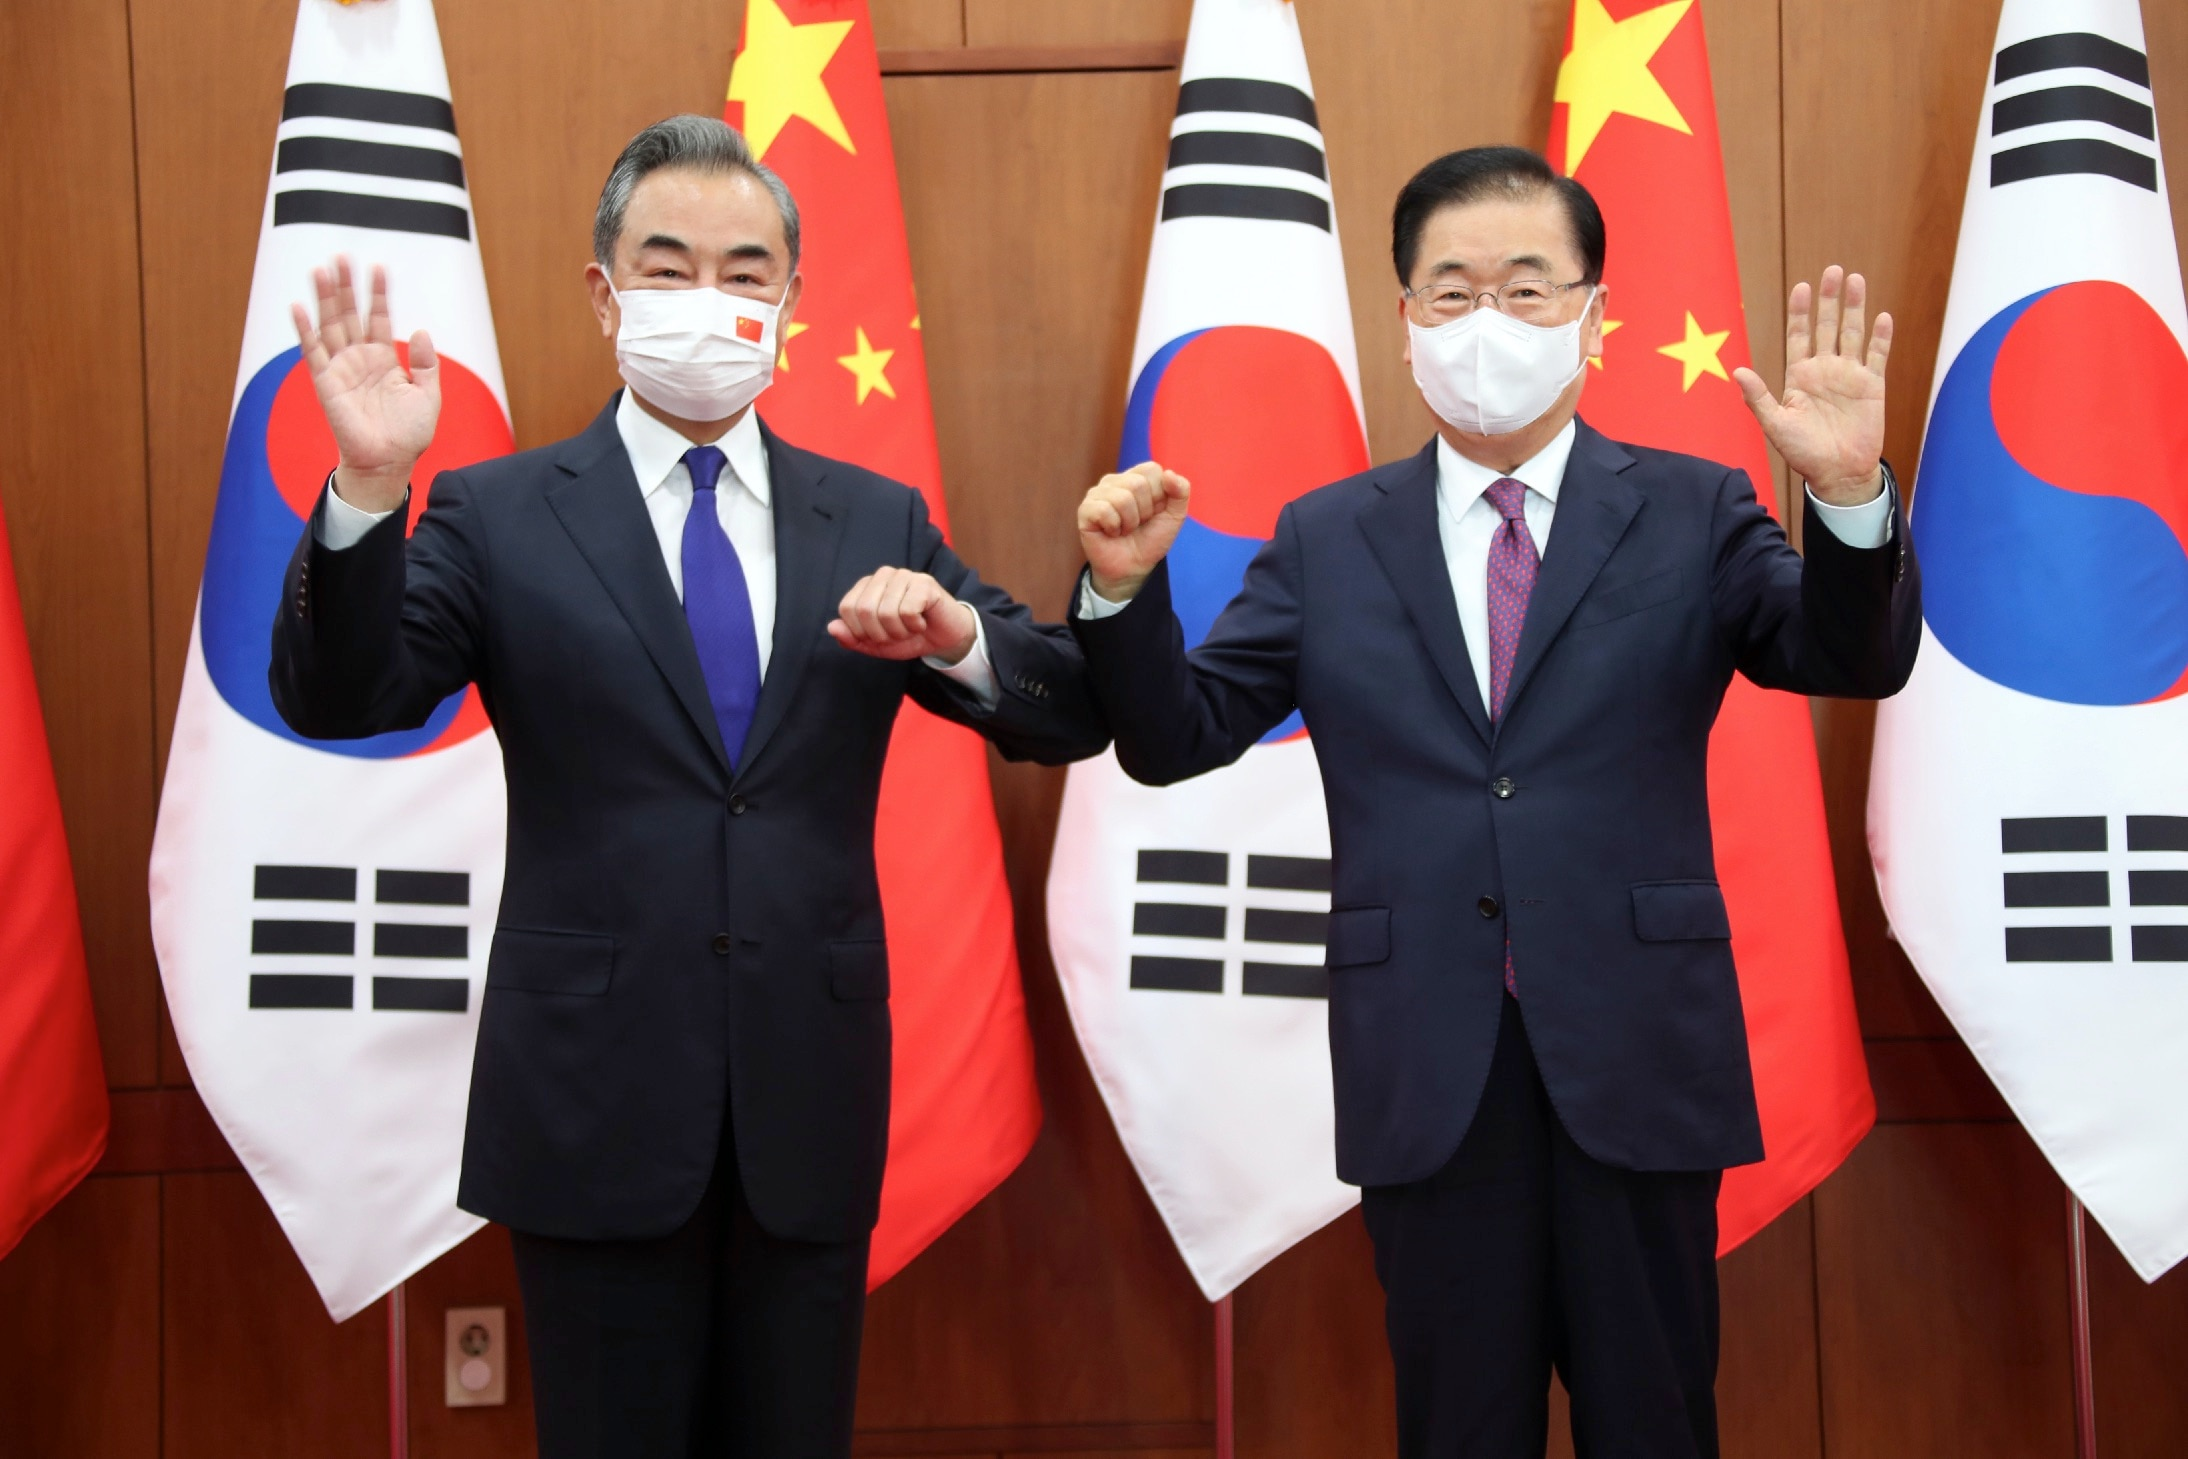 Chinese Foreign Minister Wang Yi (left) met with his South Korean counterpart, Chung Eui-yong, in Seoul on 15 September for talks on North Korea.